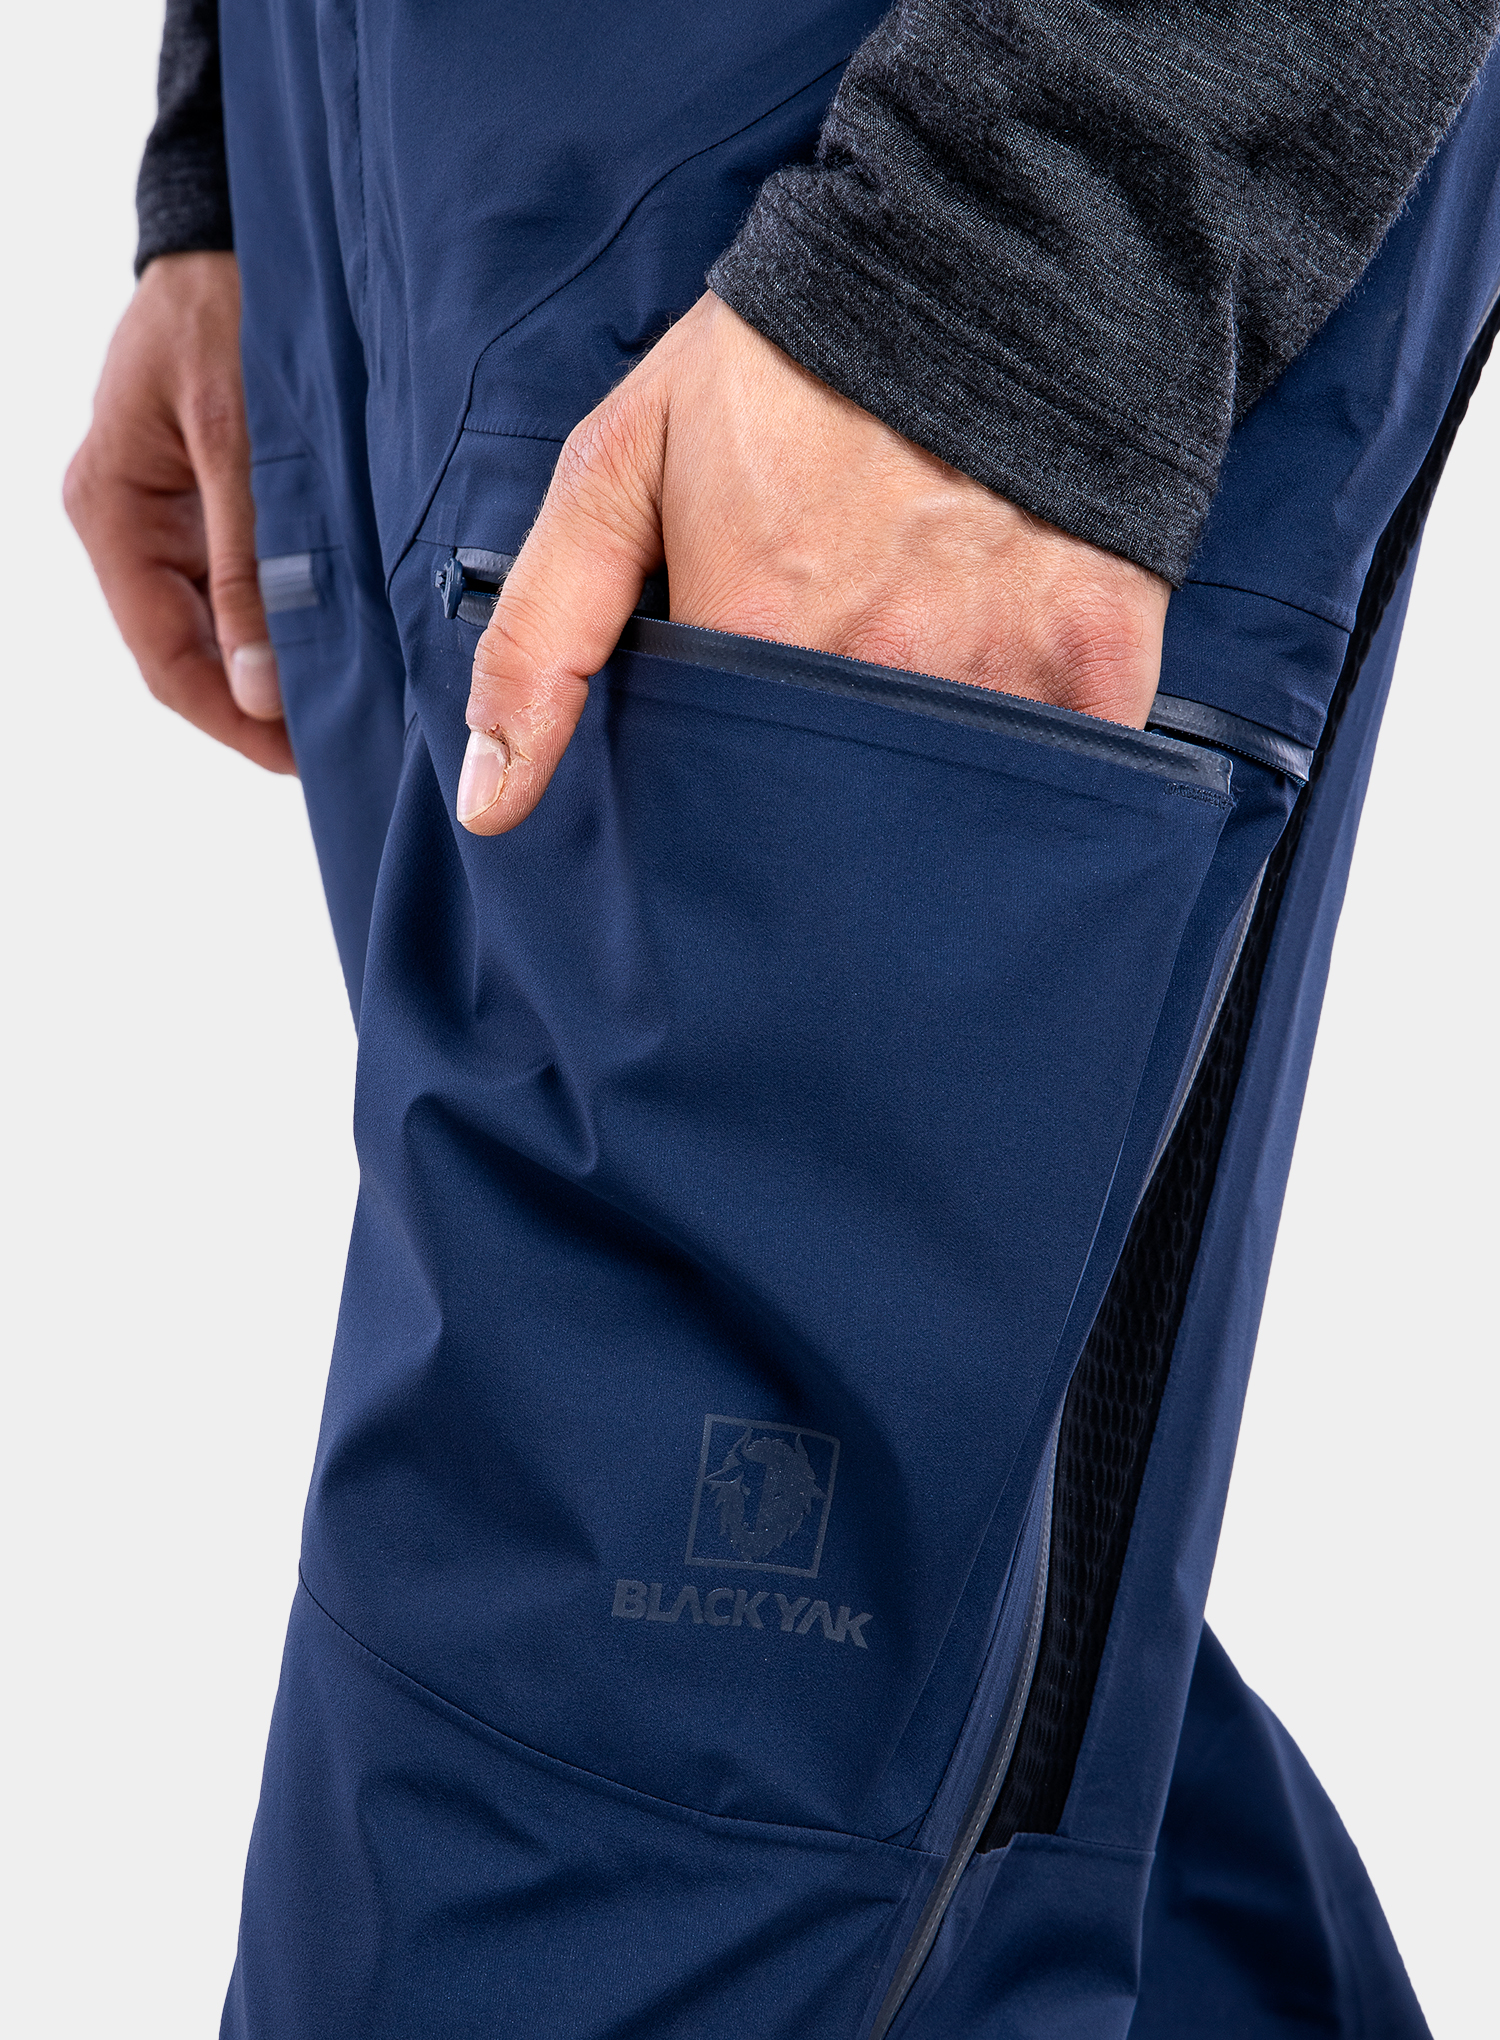 Spodnie GORE-TEX BlackYak Brangus Pants - dress blues - zdjęcie nr. 9